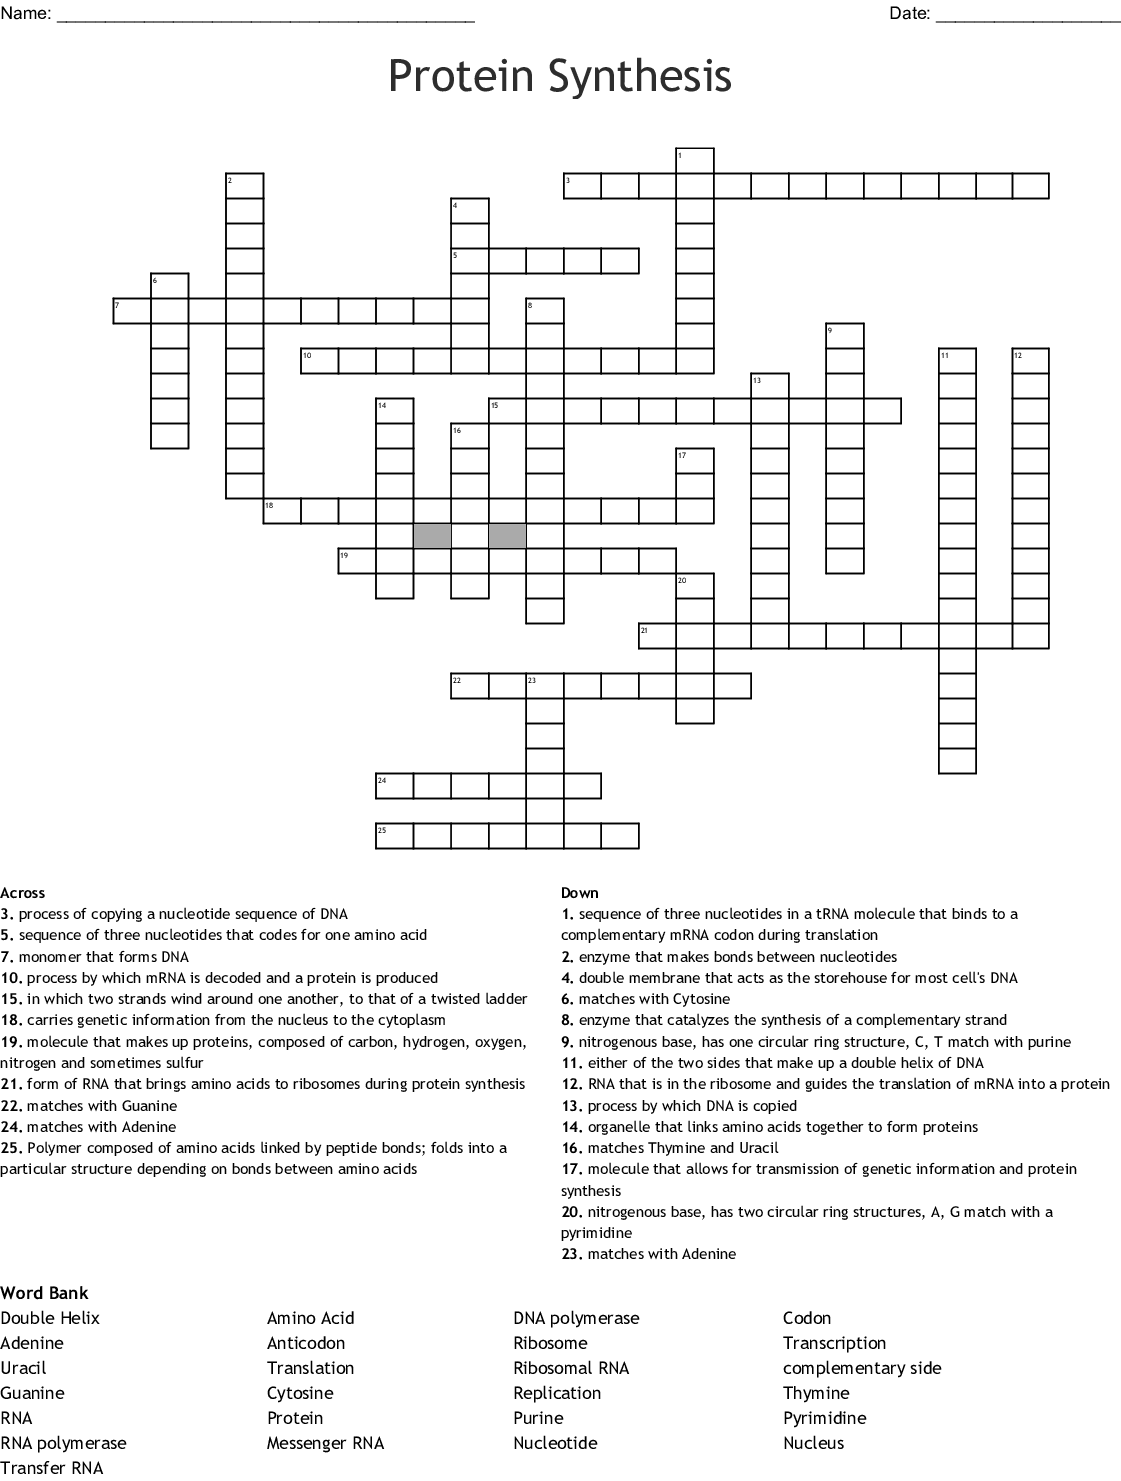 Dna Rna Protein Synthesis Crossword